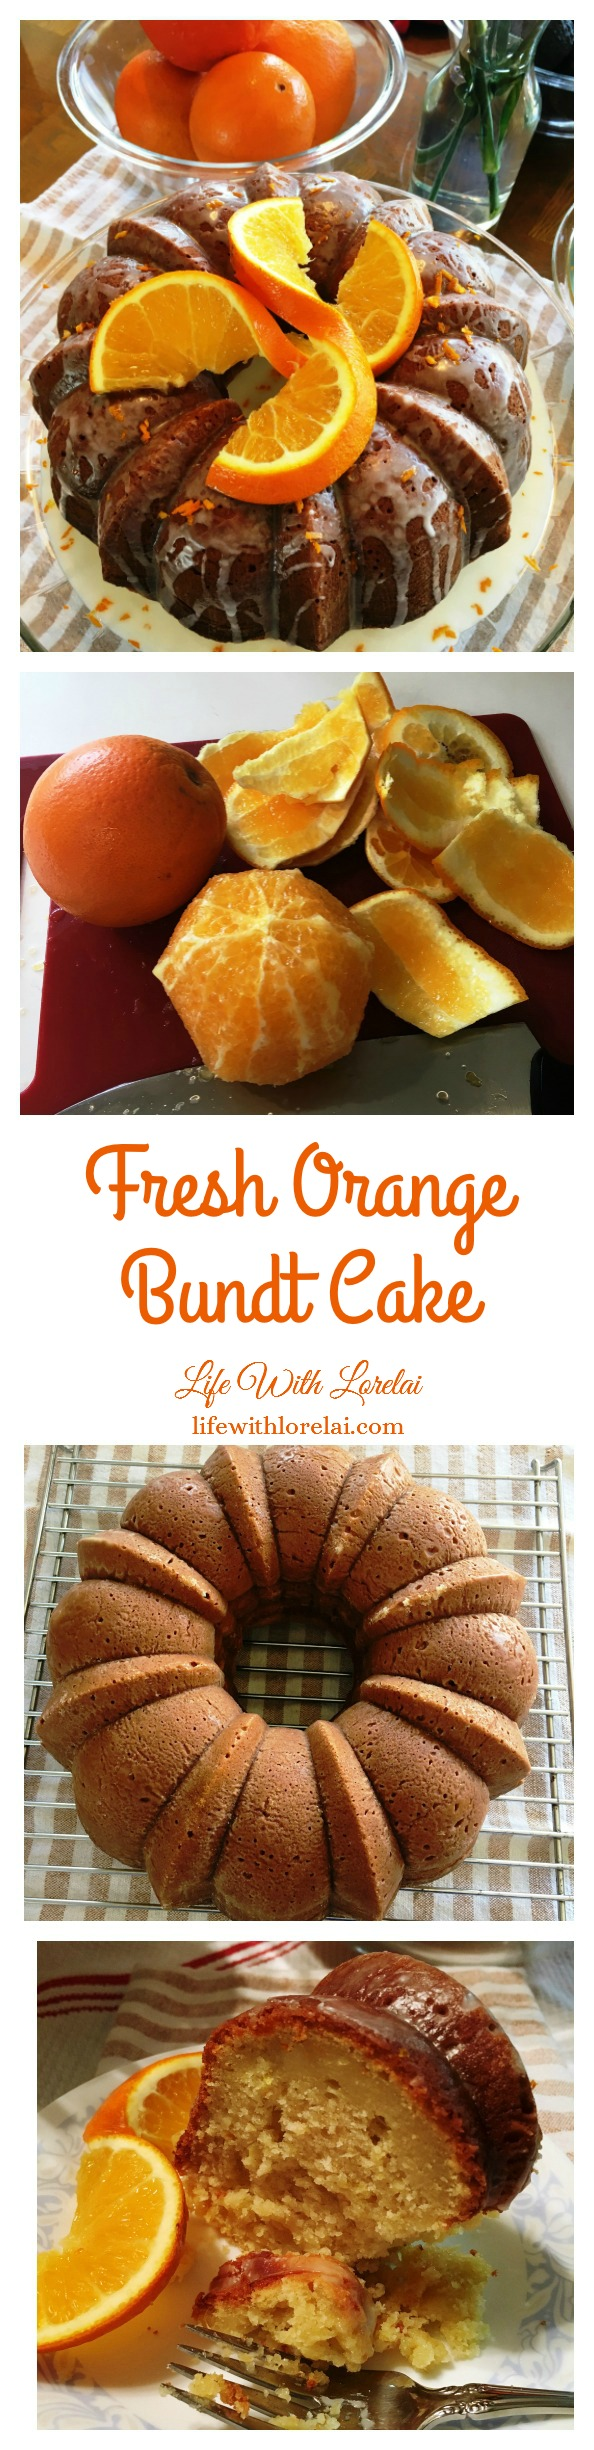 Fresh Orange Bundt Cake from Life With Lorelai